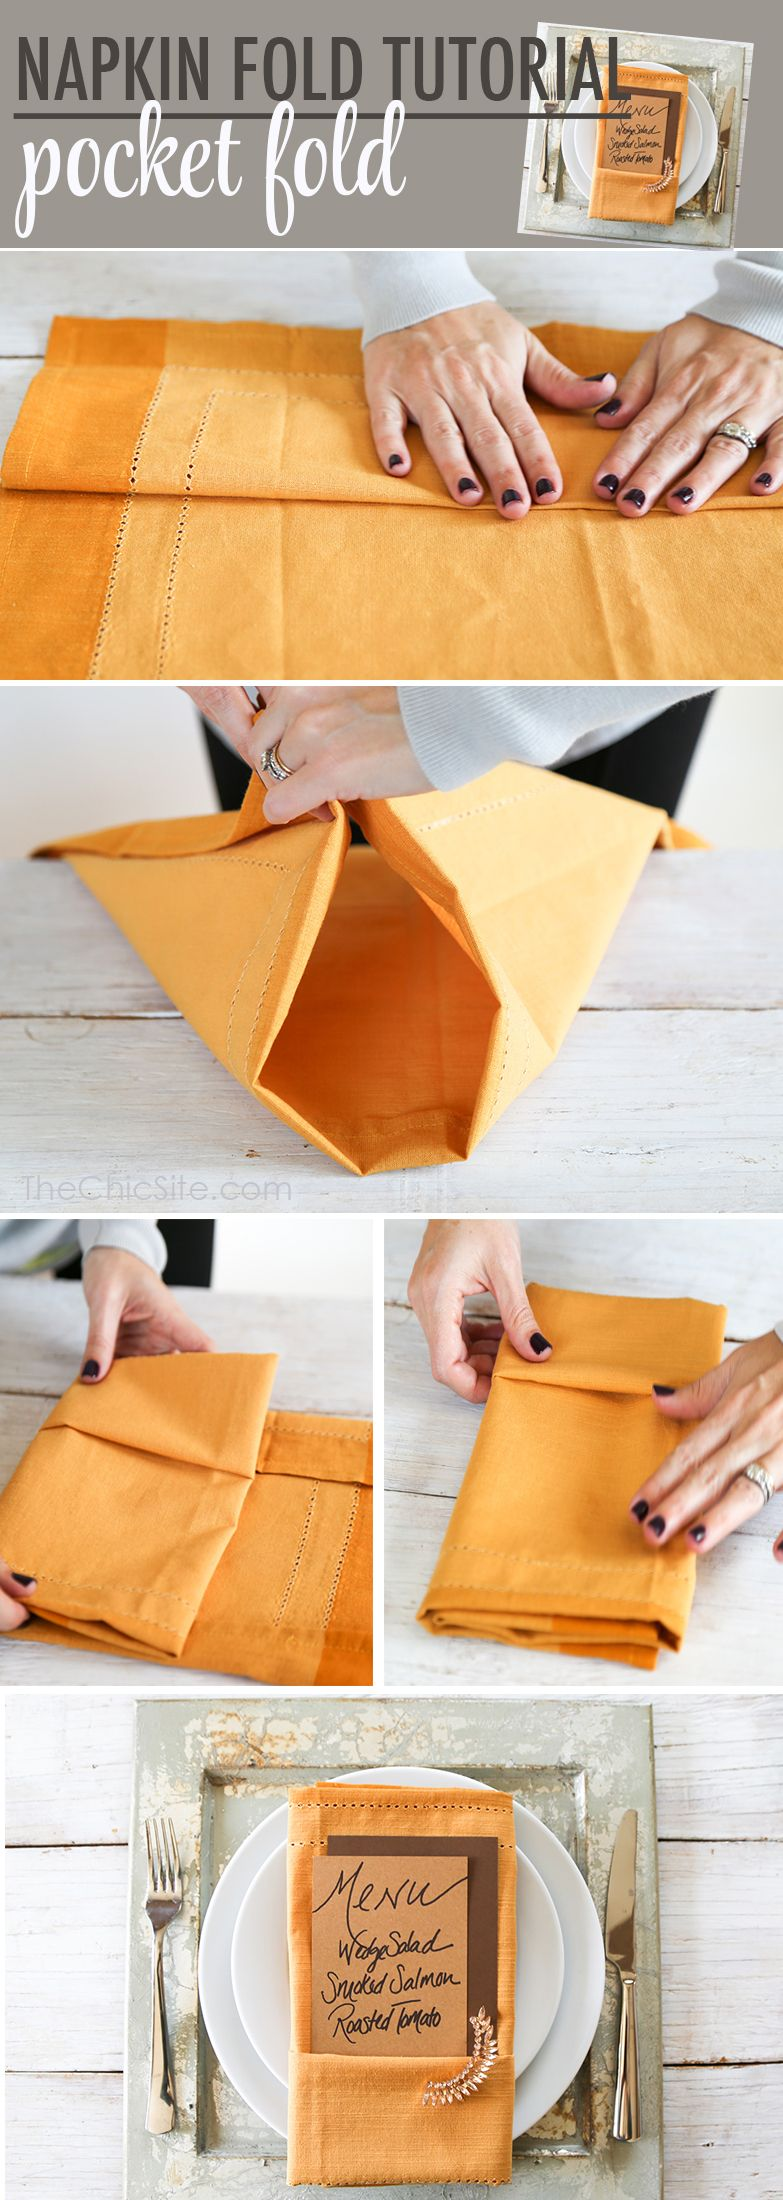 this is a stepstep how to tutorial on my beautiful pocket fold